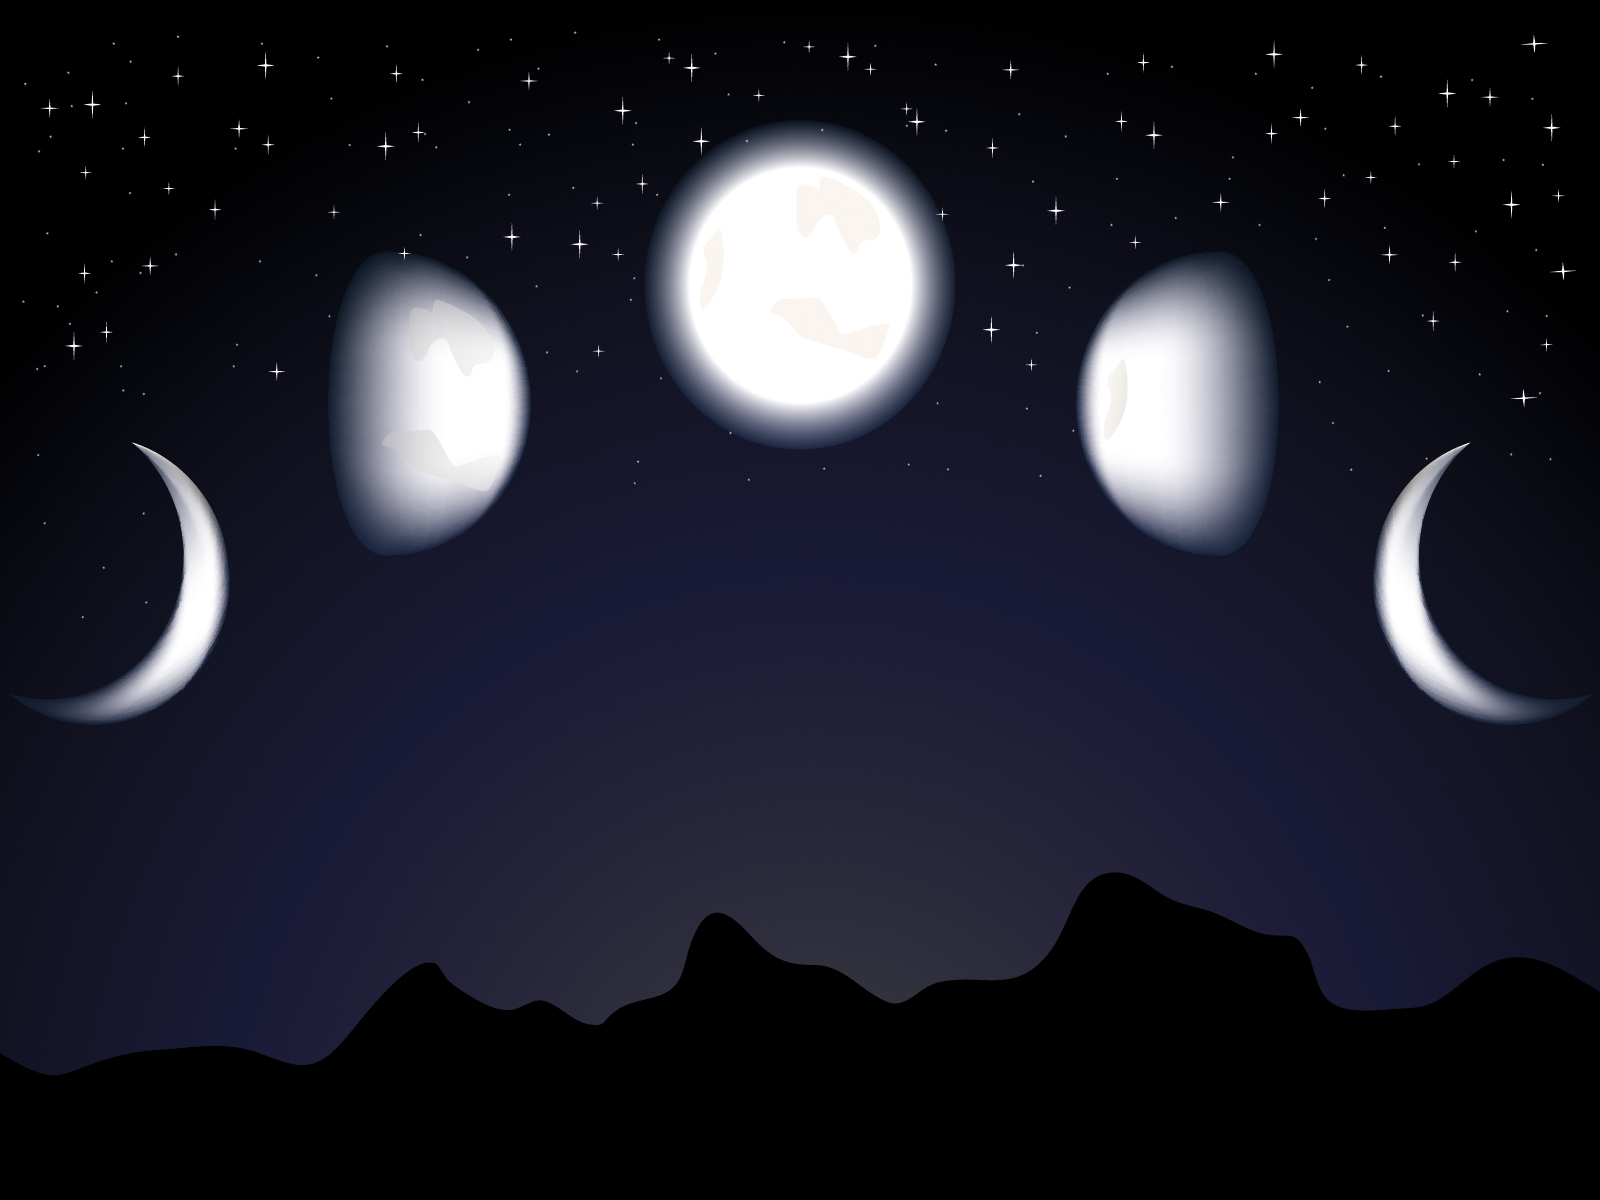 Gangster Wallpaper 3d Moon And Night Backgrounds Design Nature Templates